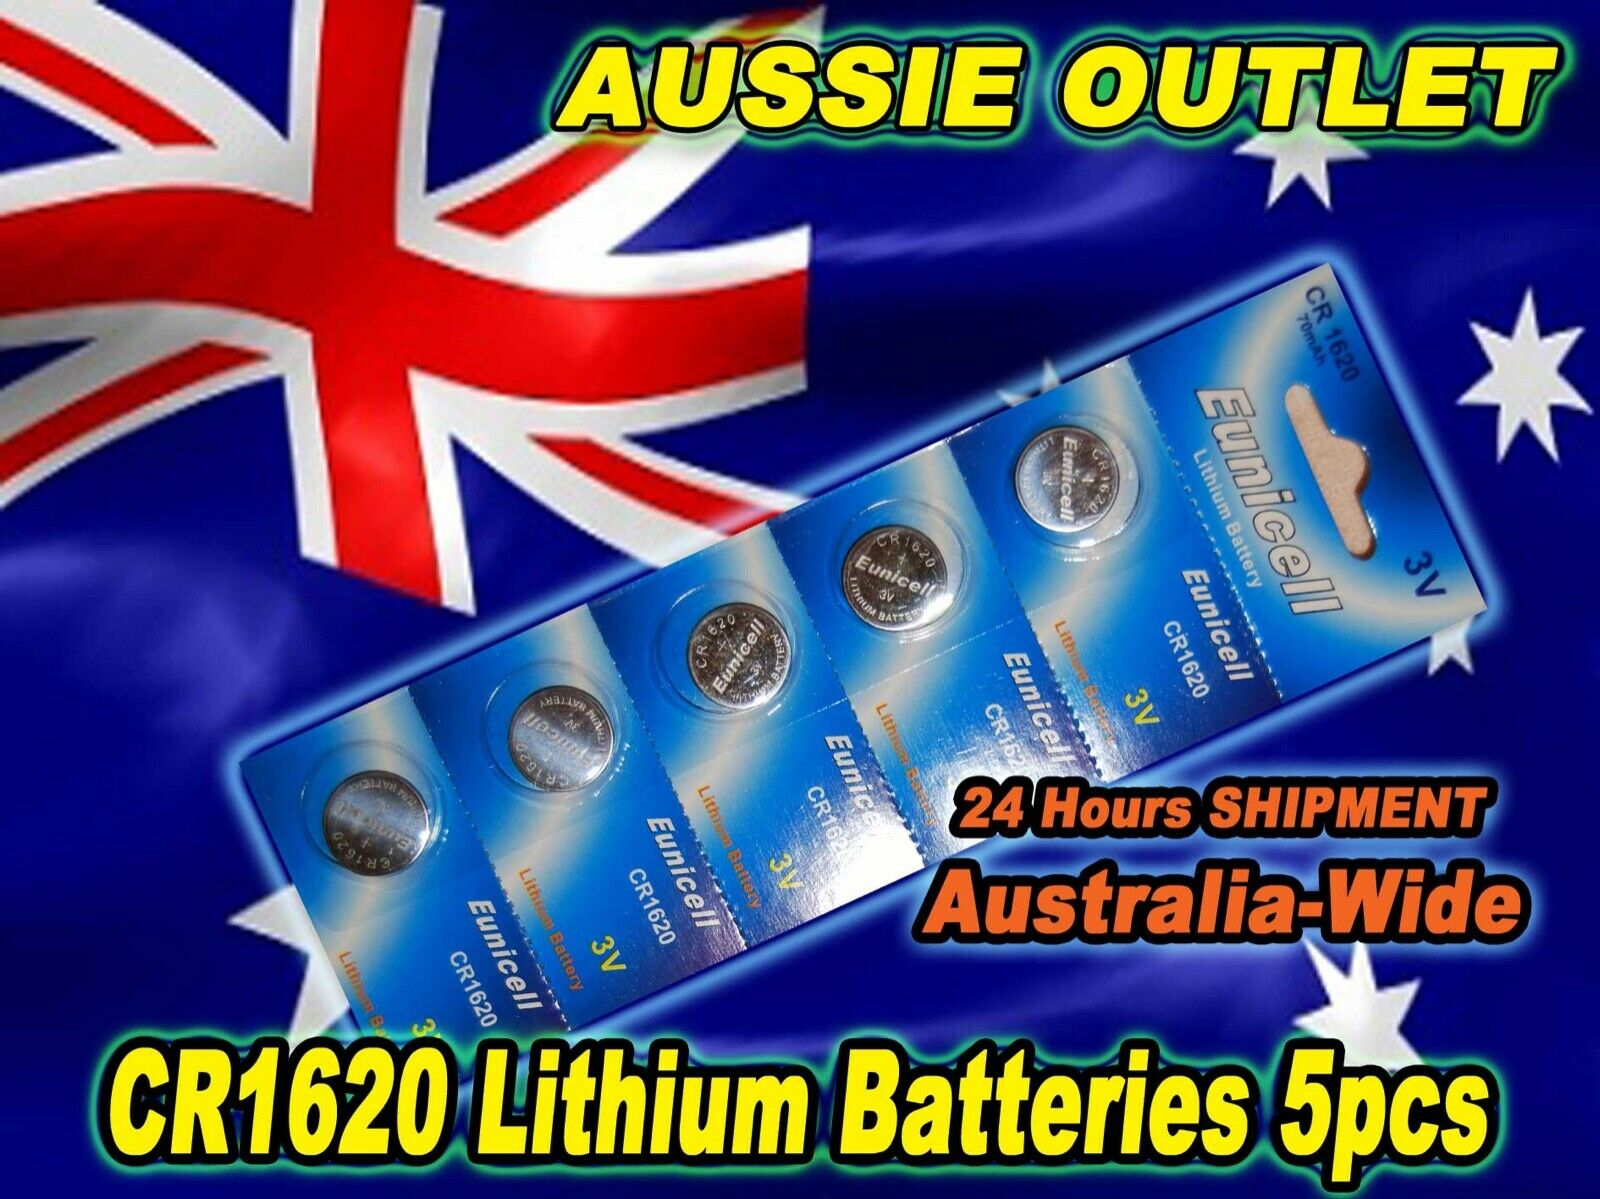 Quick Delivery 5 pcs. CR1620 3V Eunicell Lithium Batteries - Stock in Australia